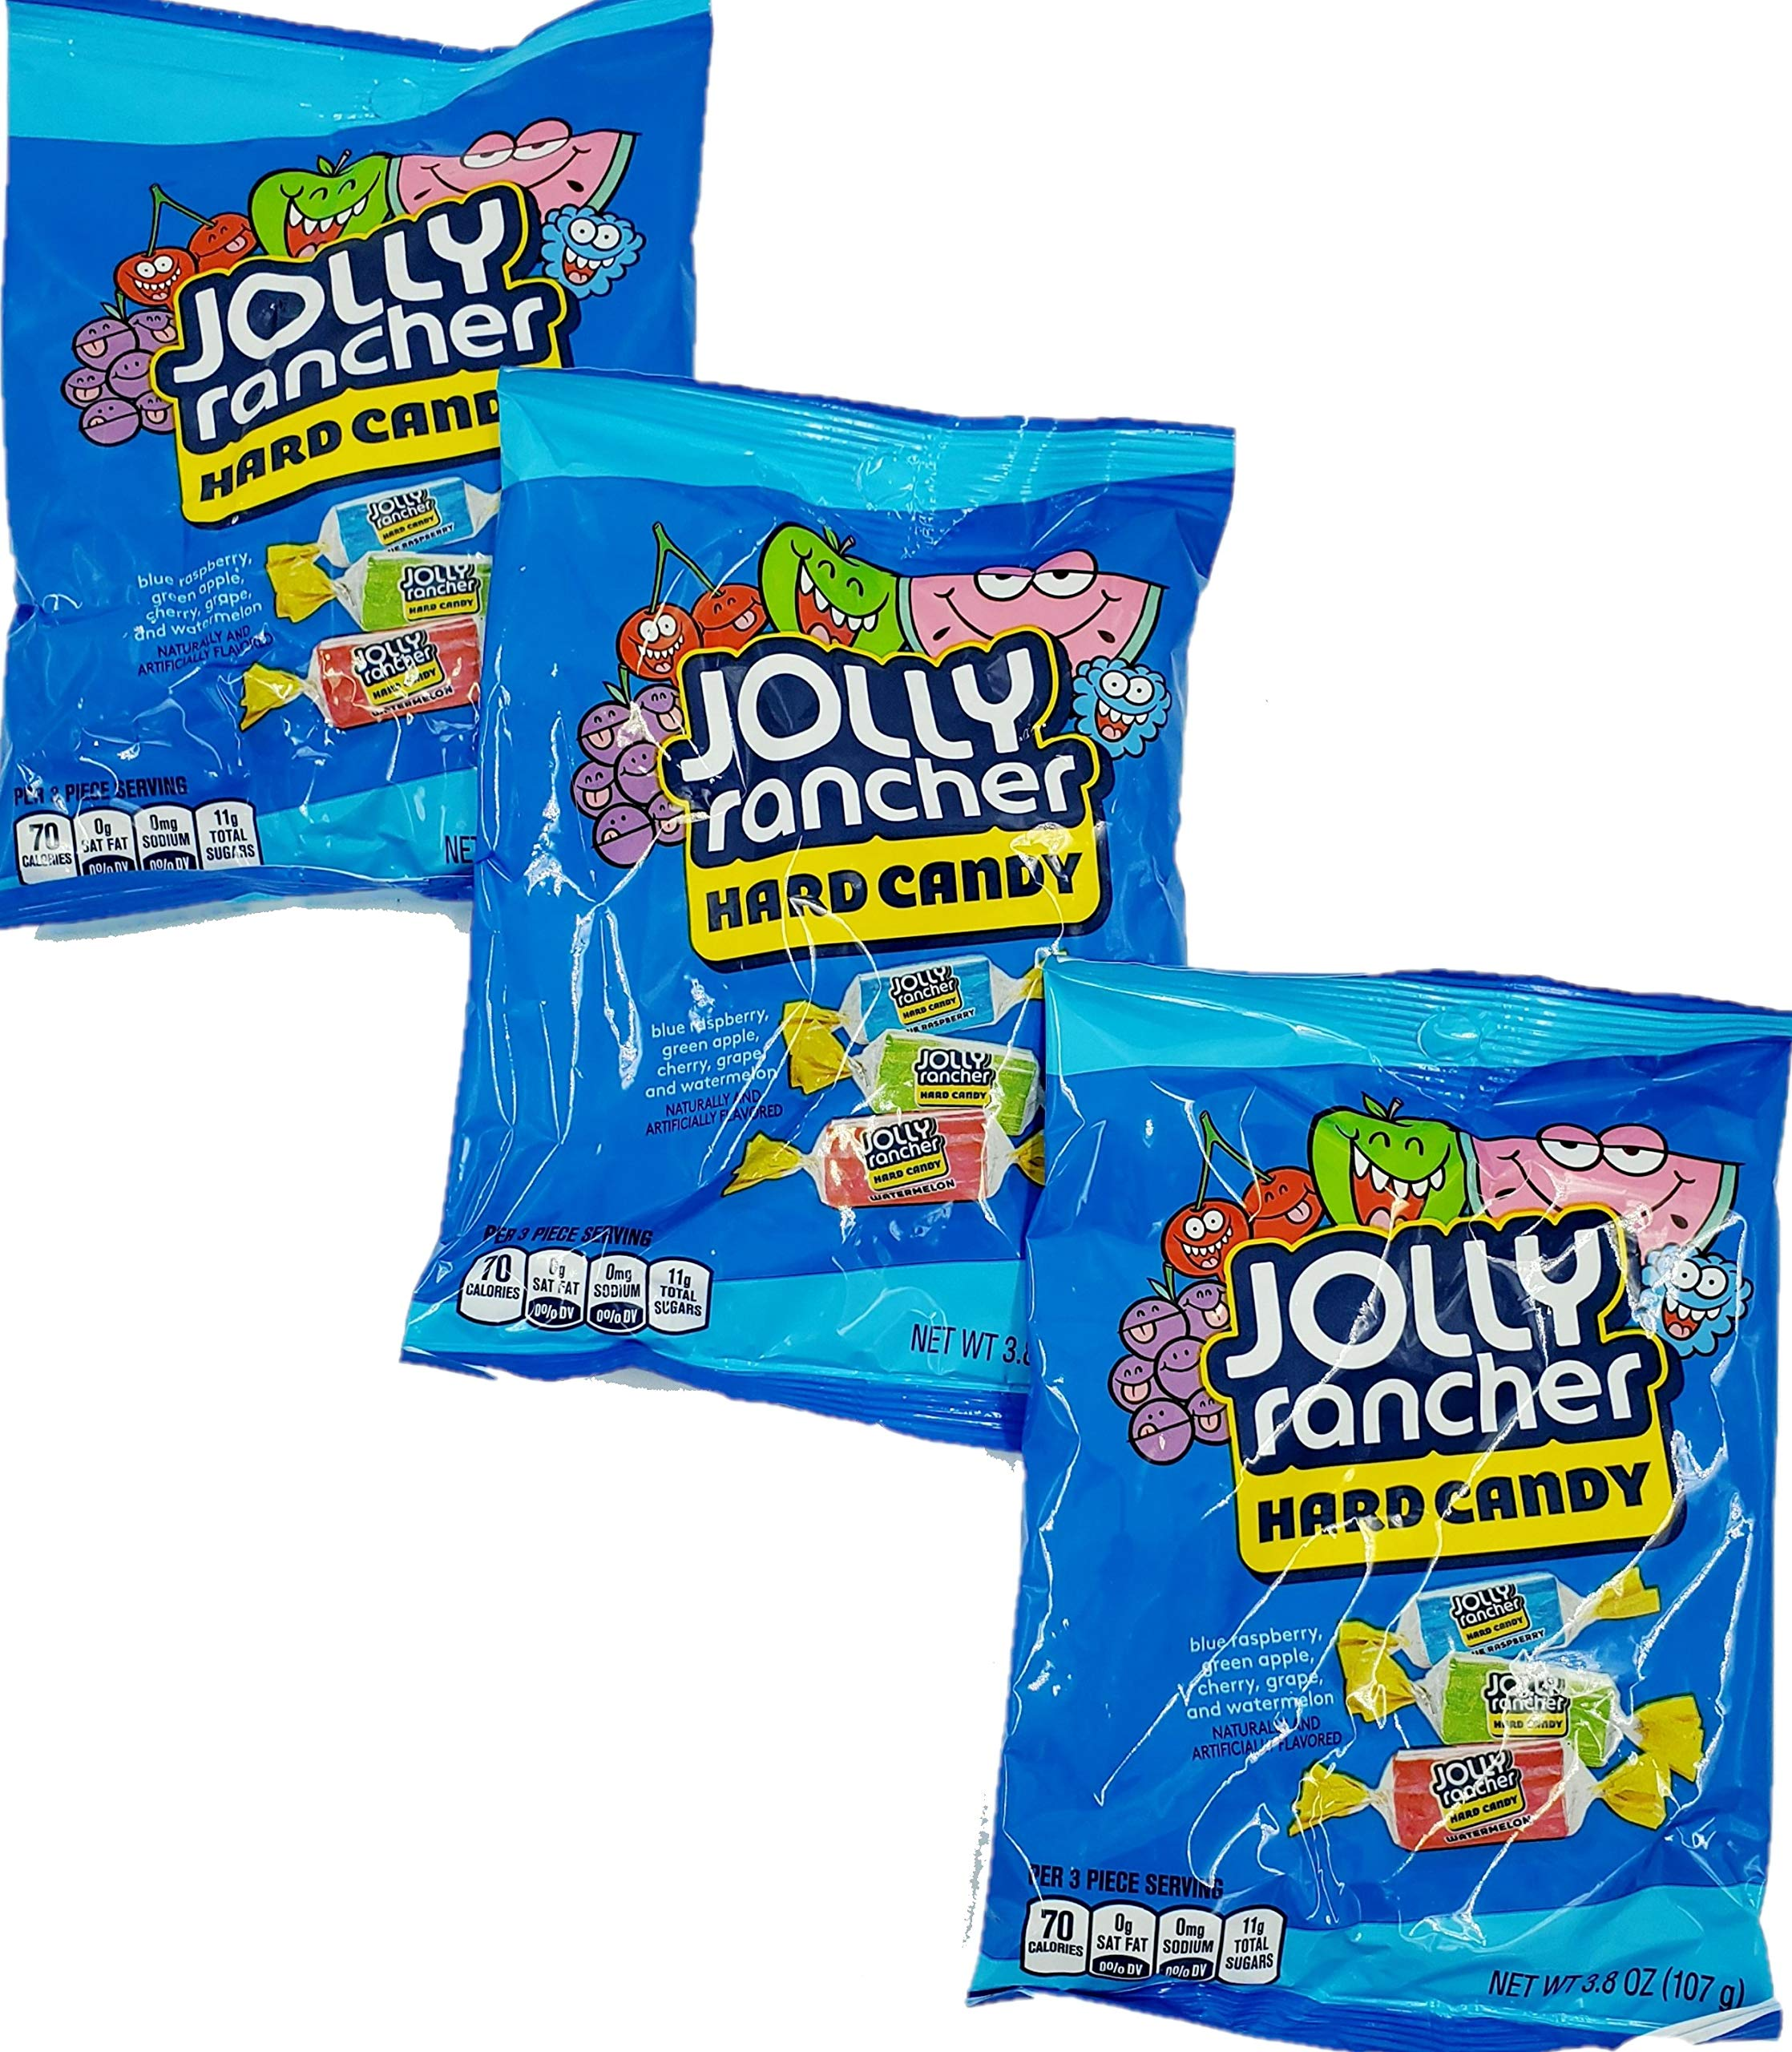 Jolly Rancher Hard Candy in Original Flavors (3.8-Ounce package) (3 Pack)